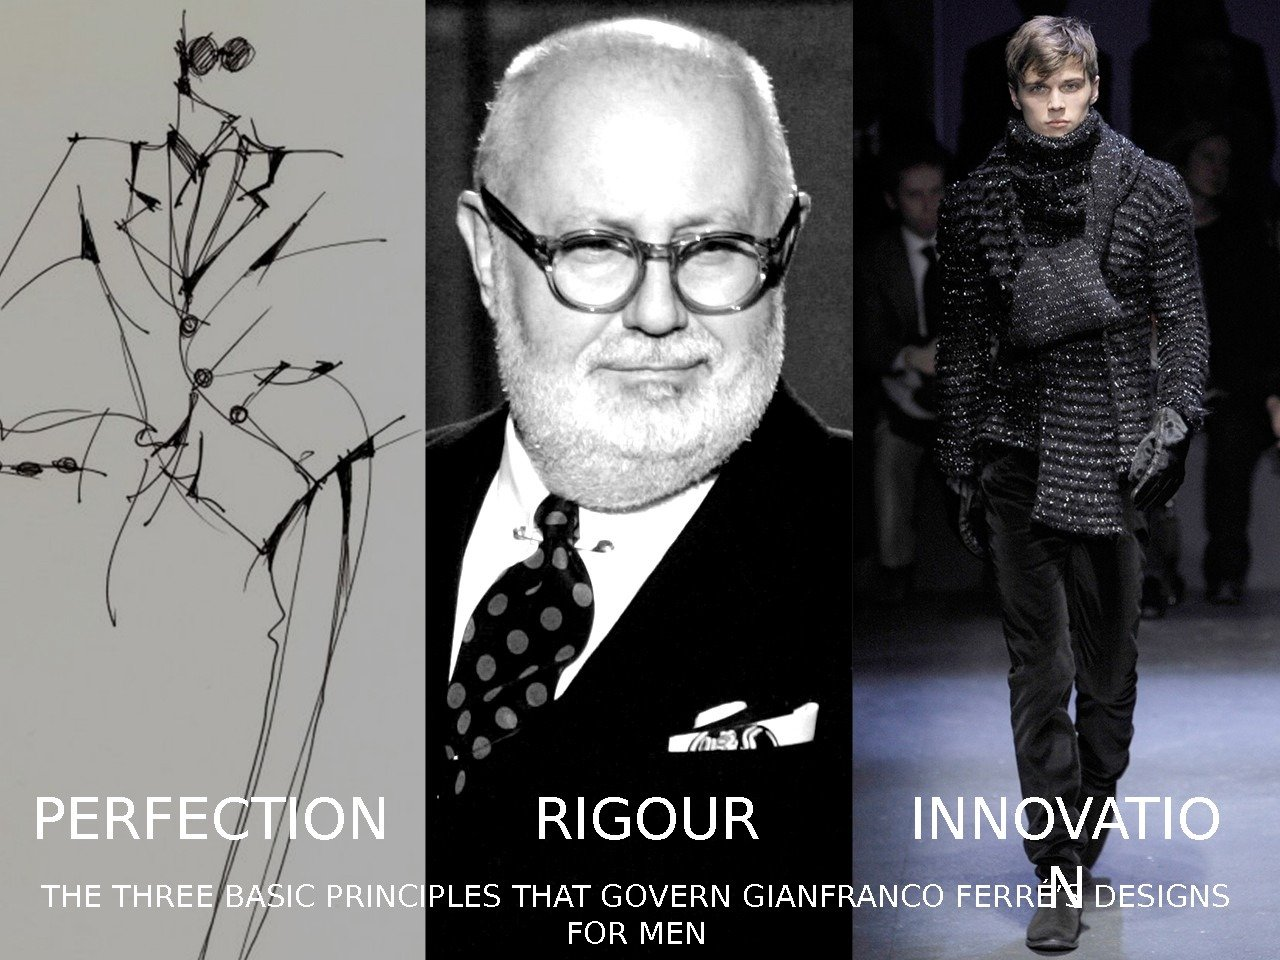 THE THREE BASIC PRINCIPLES THAT GOVERN GIANFRANCO FERRÉ'S DESIGNS FOR MENPERFECTION RIGOUR INNOVATIO N